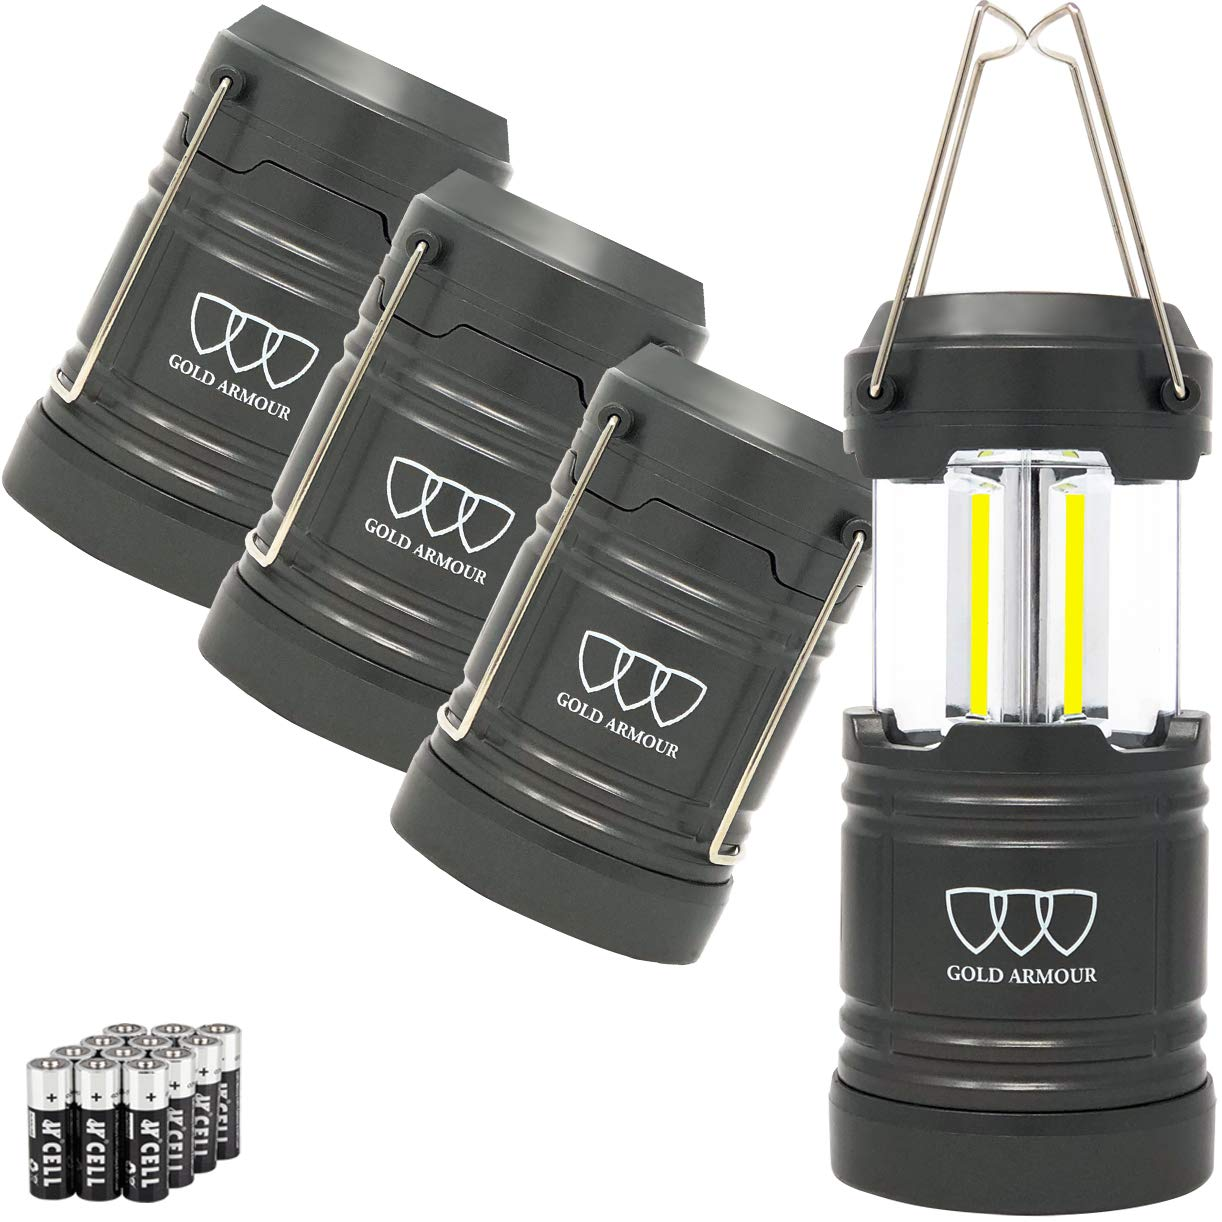 Gold Armour 4 Pack Portable Led Camping Lantern – Survival Kit Gear for Emergency, Hurricane, Power Outage, Camping with 12 aa Batteries